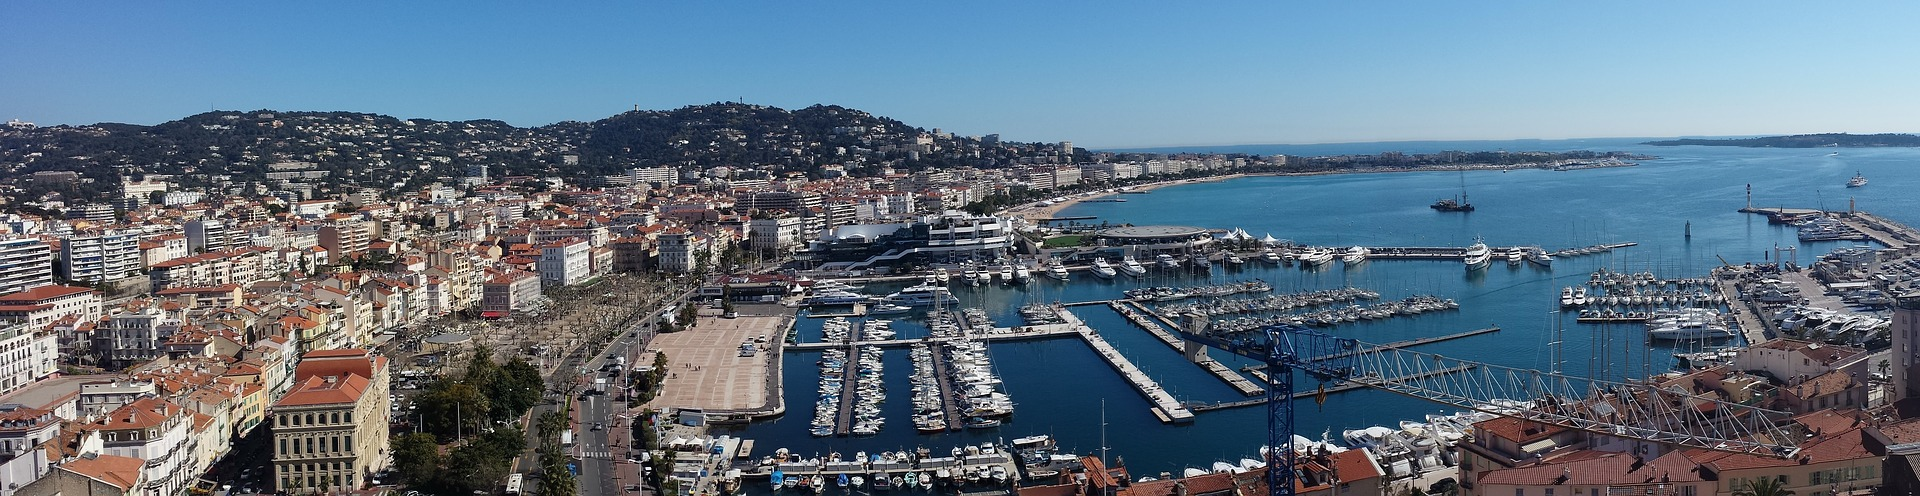 Cannes festival & the French Riviera